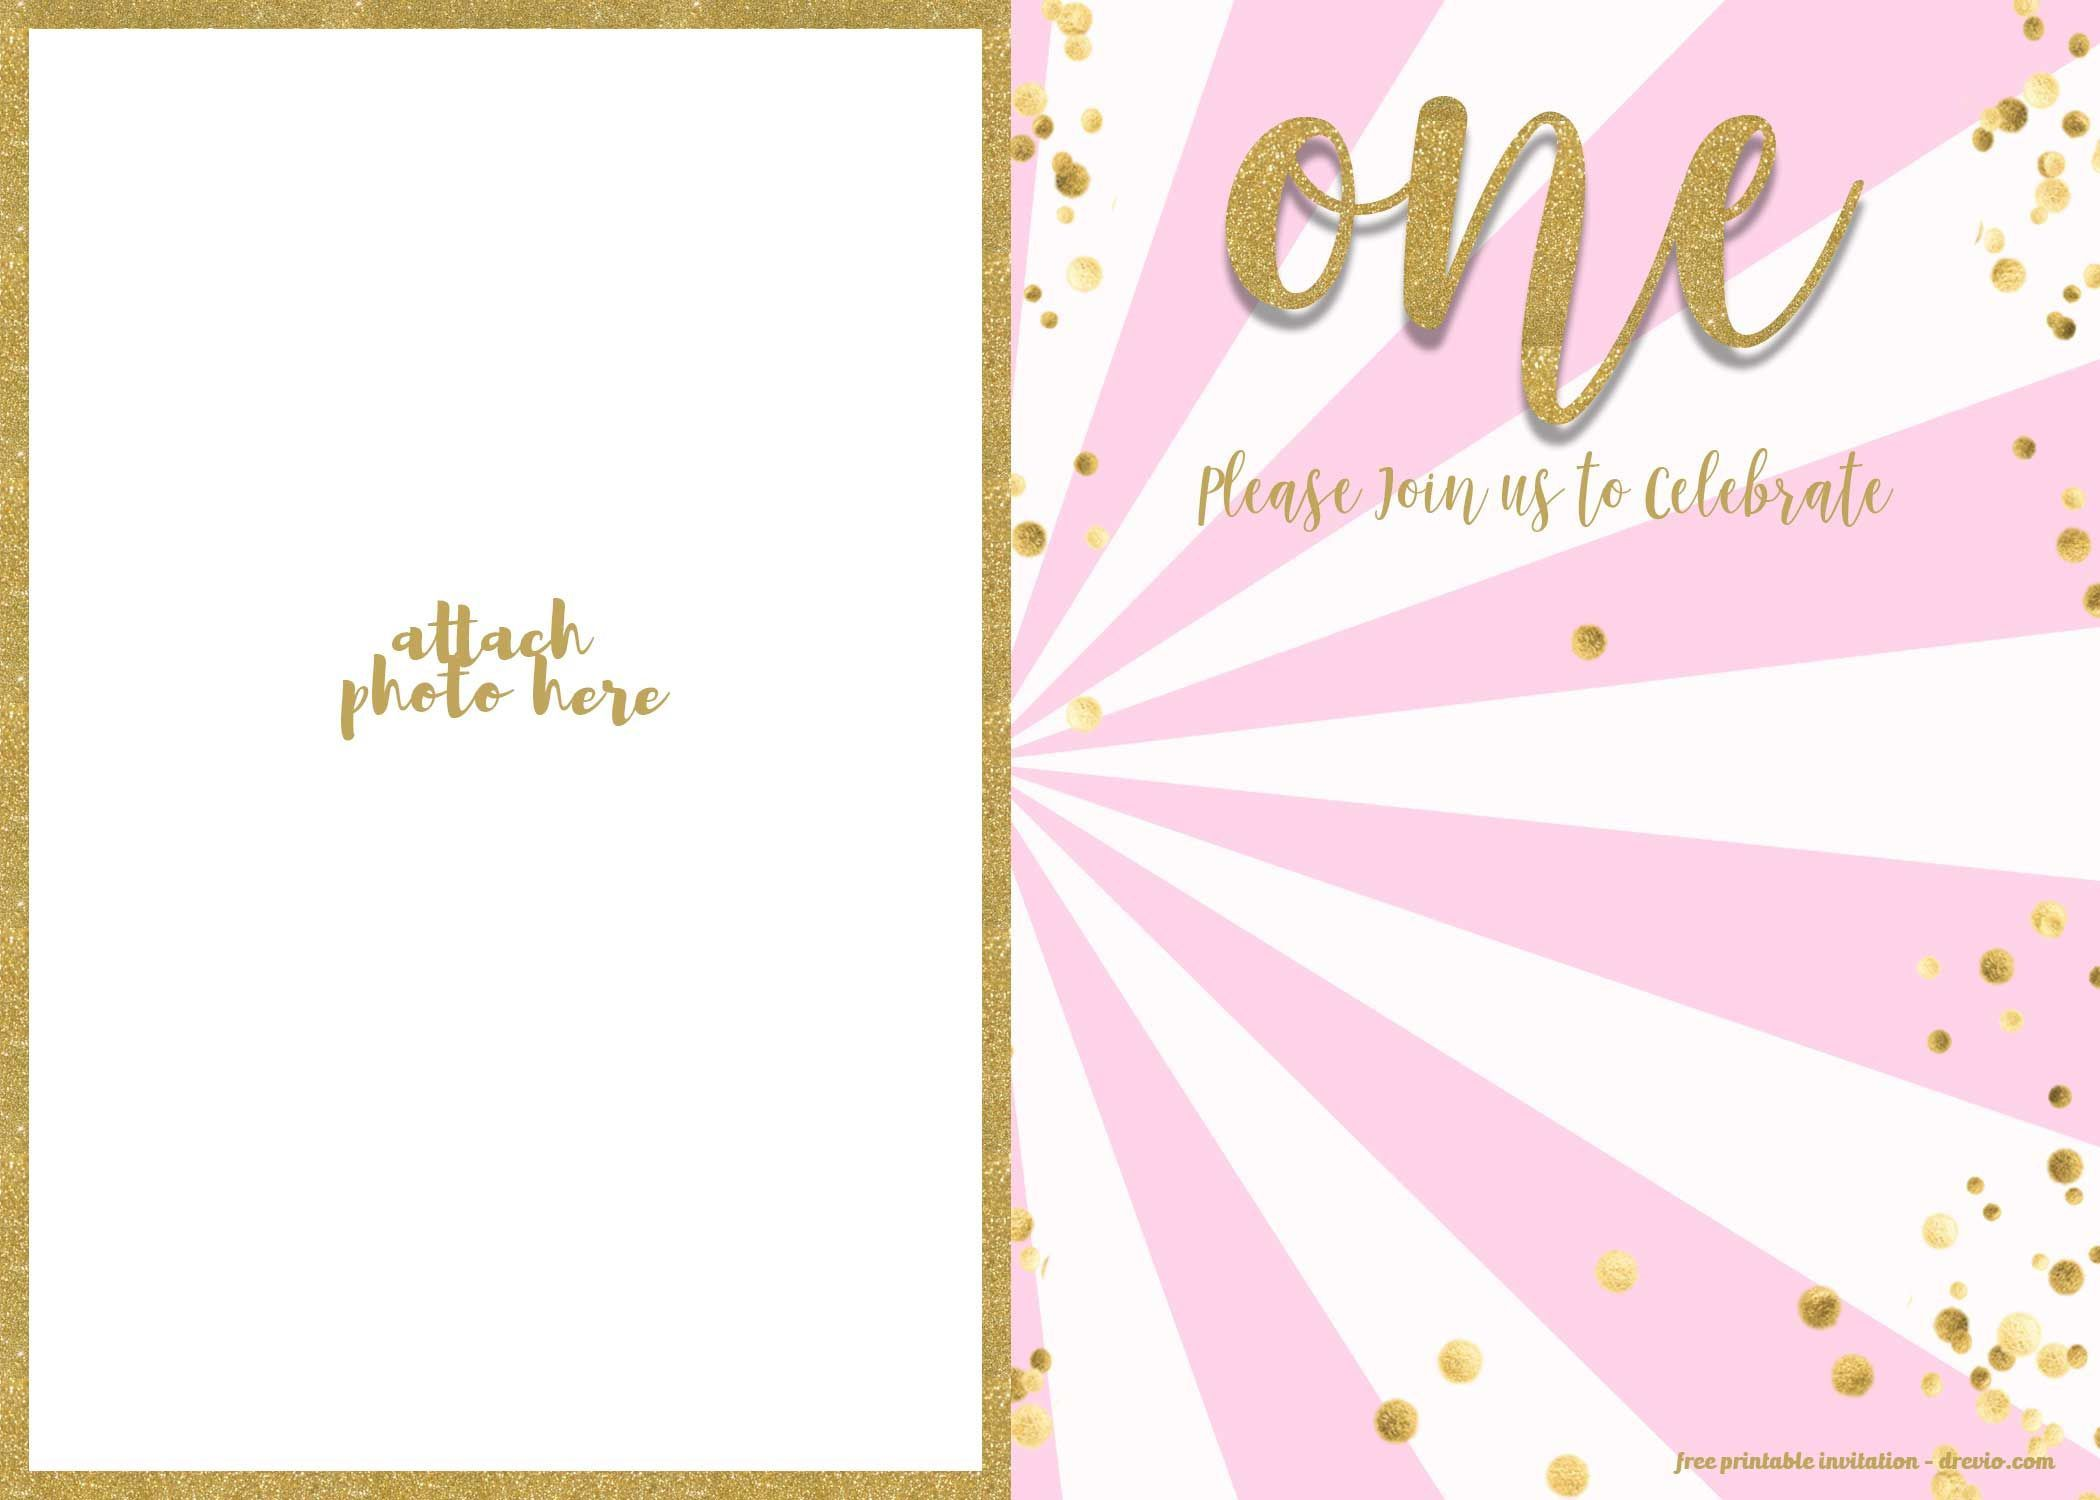 003 Top 1st Birthday Invitation Template Inspiration  Background Design Blank For Girl First Baby Boy Free Download IndianFull